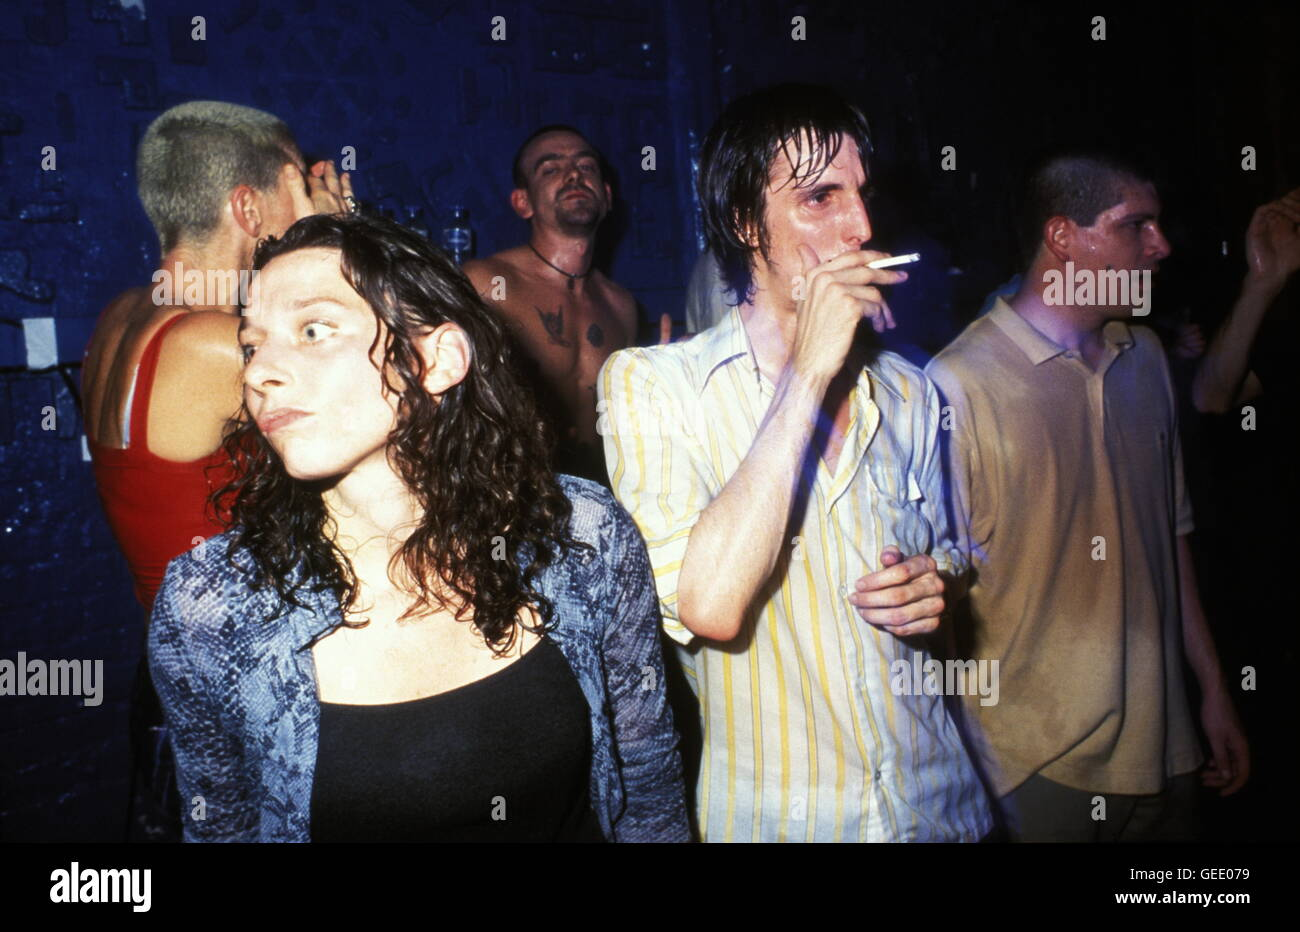 Sweaty people on drugs at a club rave herne hill UK 1990's - Stock Image